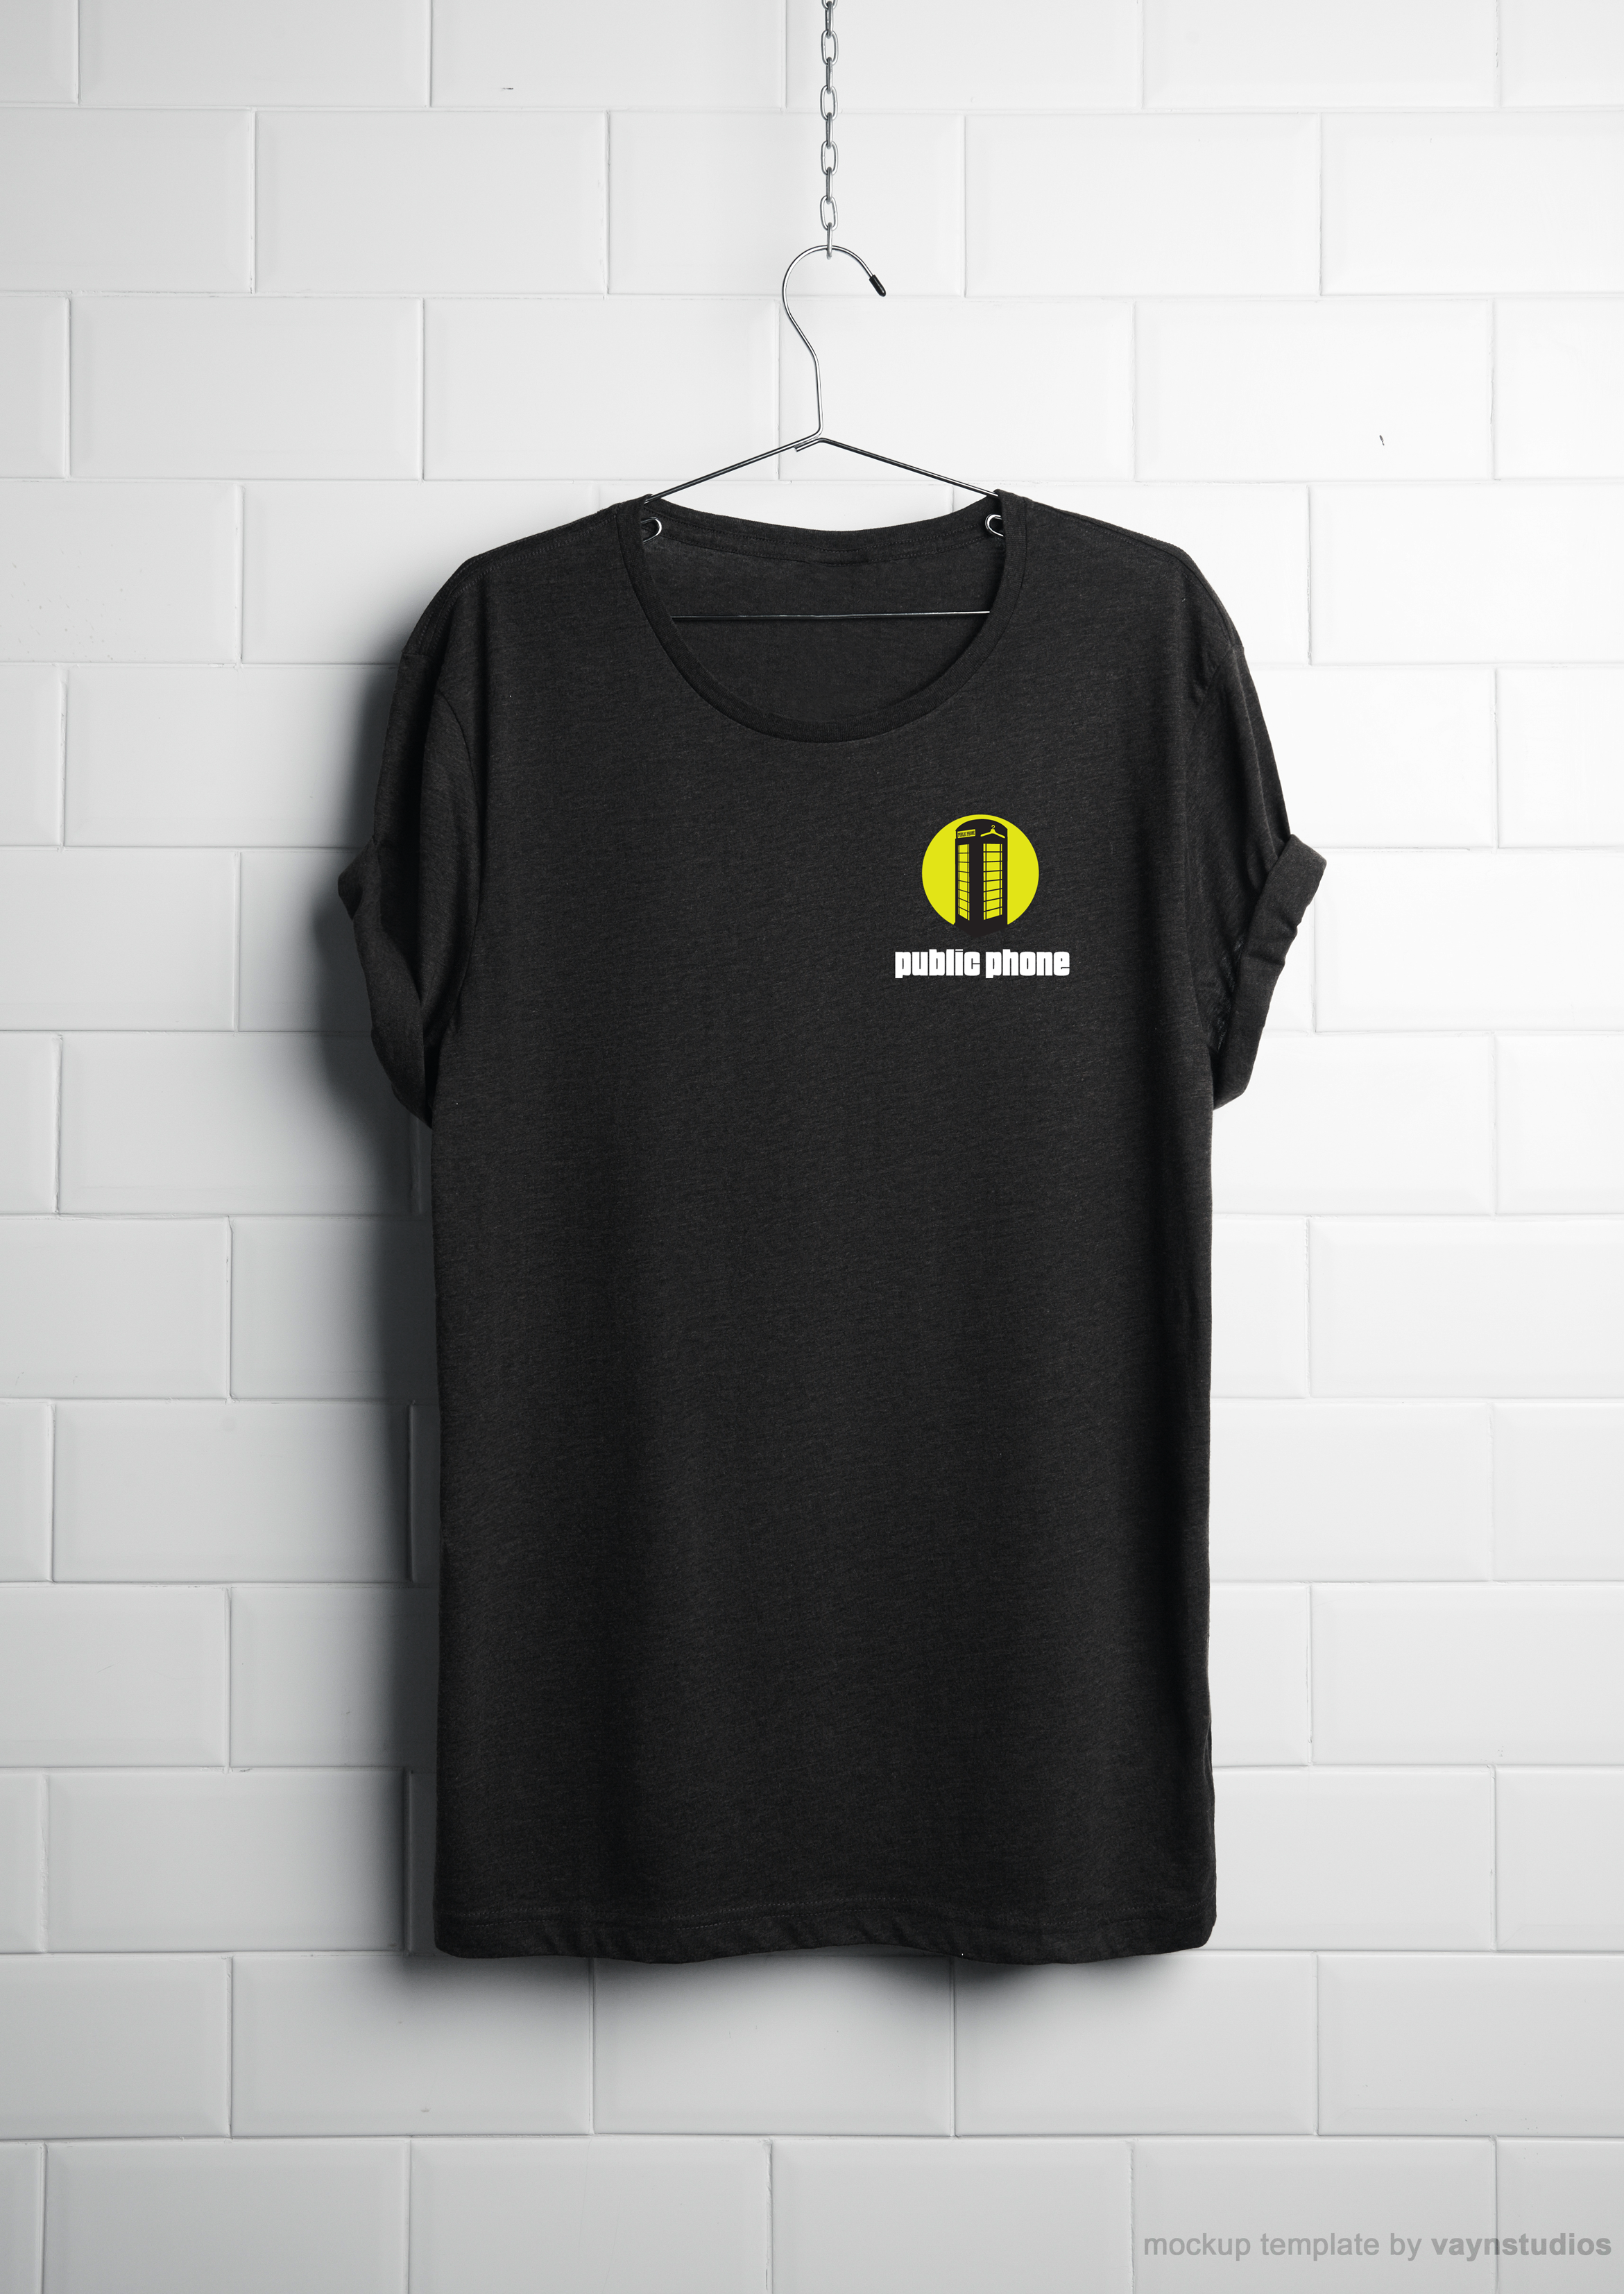 Public Phone fashion tshirt